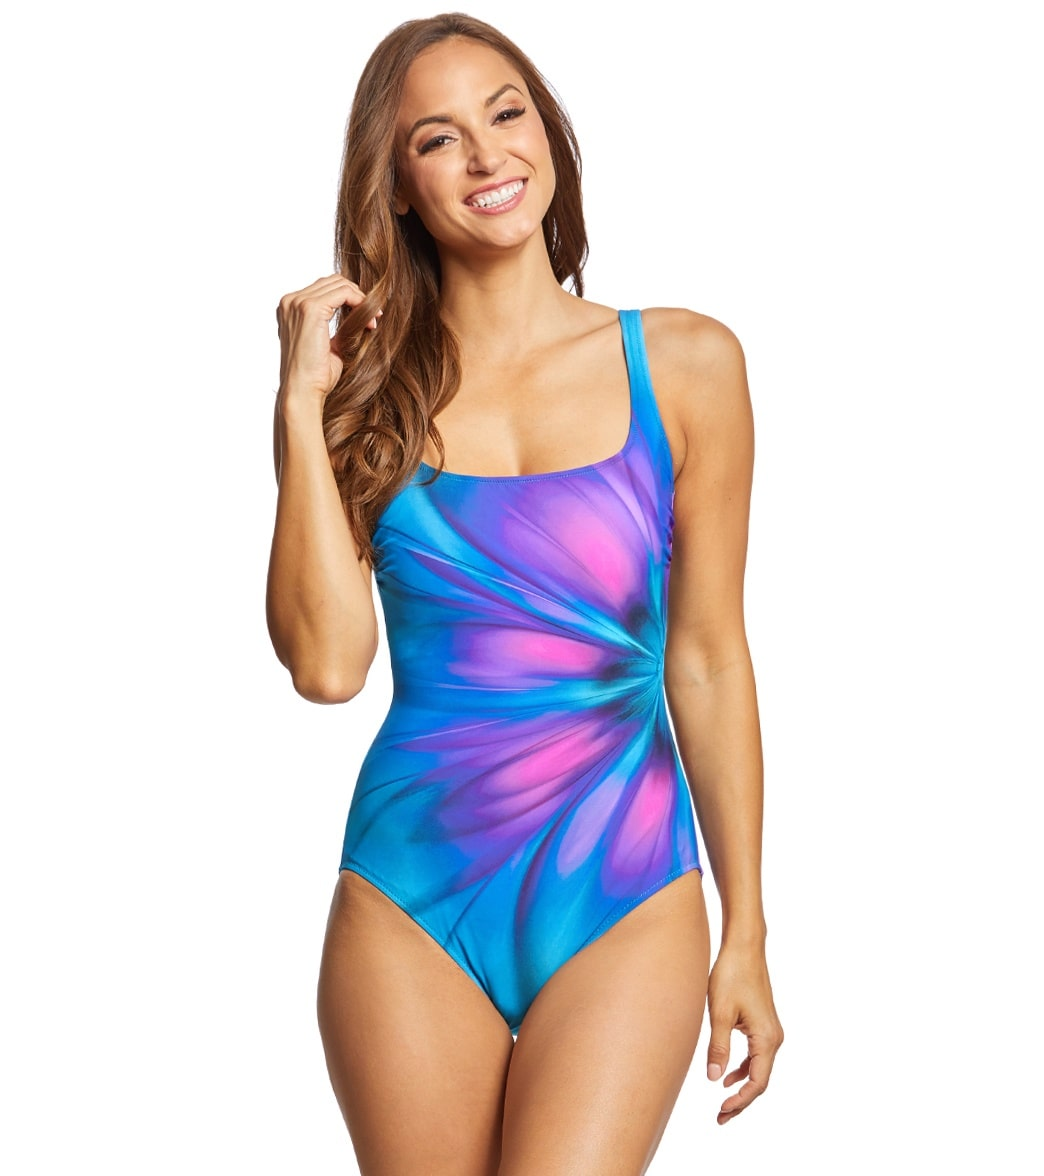 7798b37c8a2ef Gottex Belle Fleur Square Neck One Piece Swimsuit at SwimOutlet.com - Free  Shipping